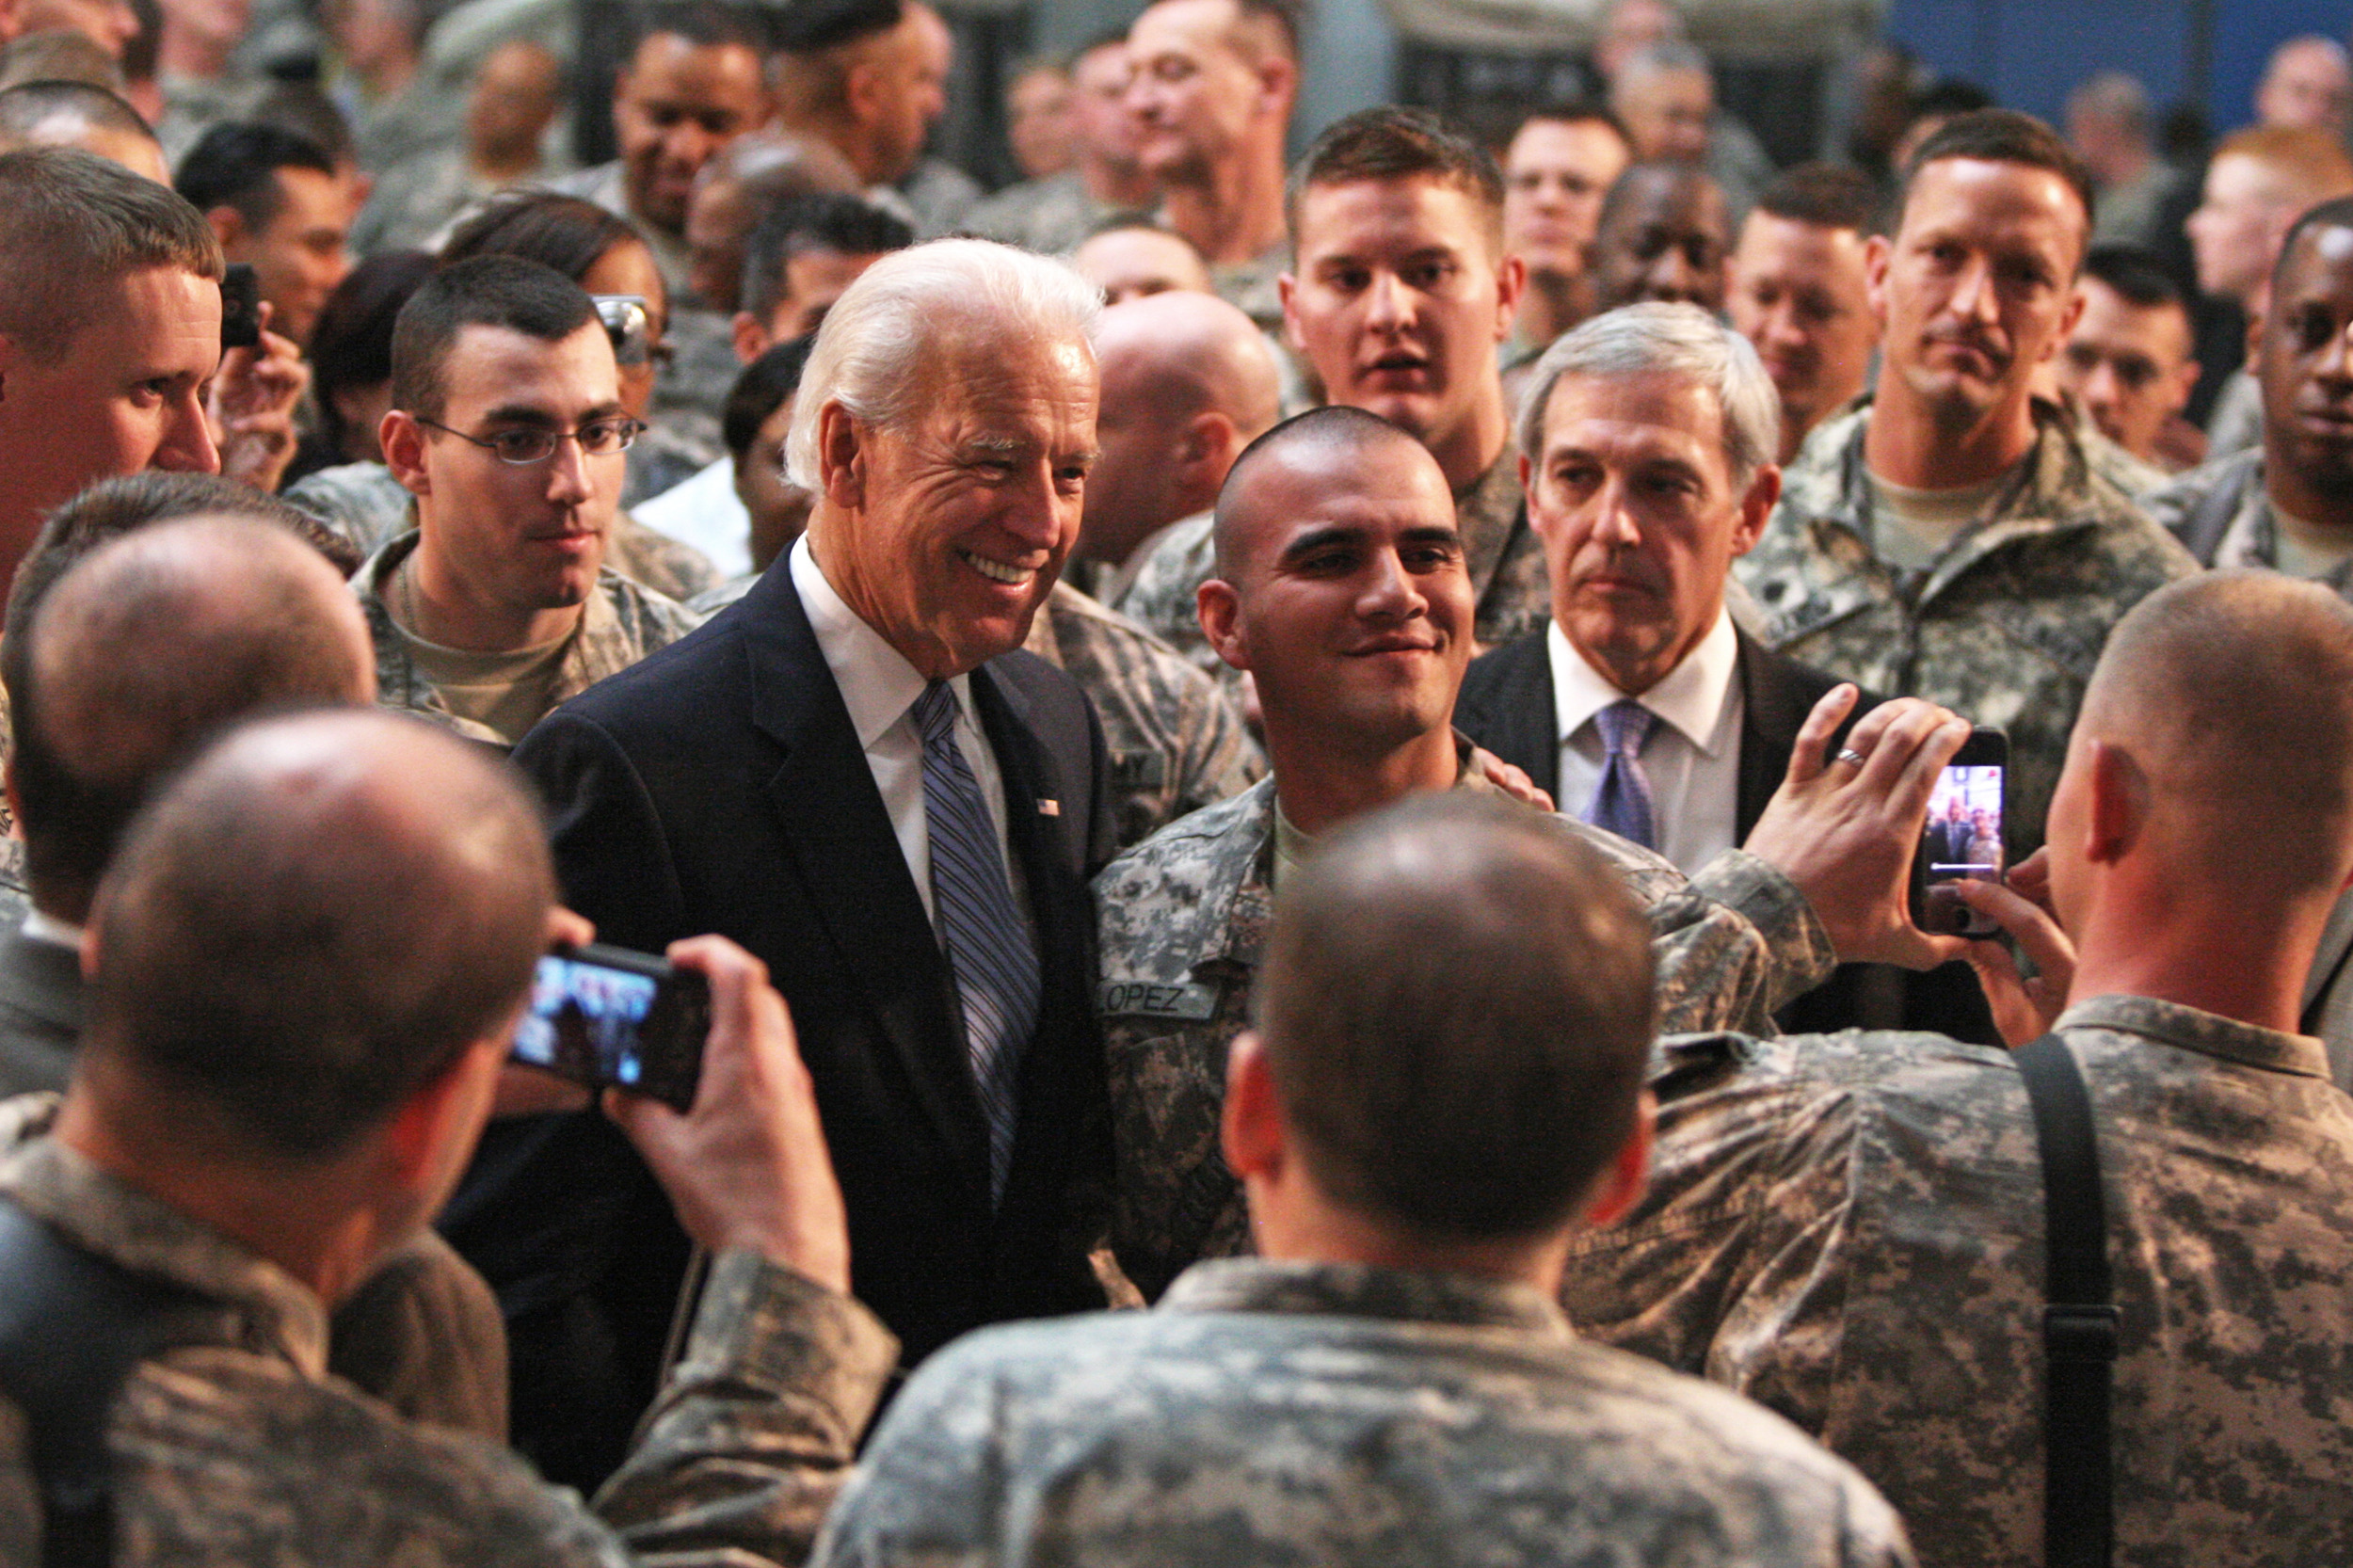 How did Biden mess this up so badly?